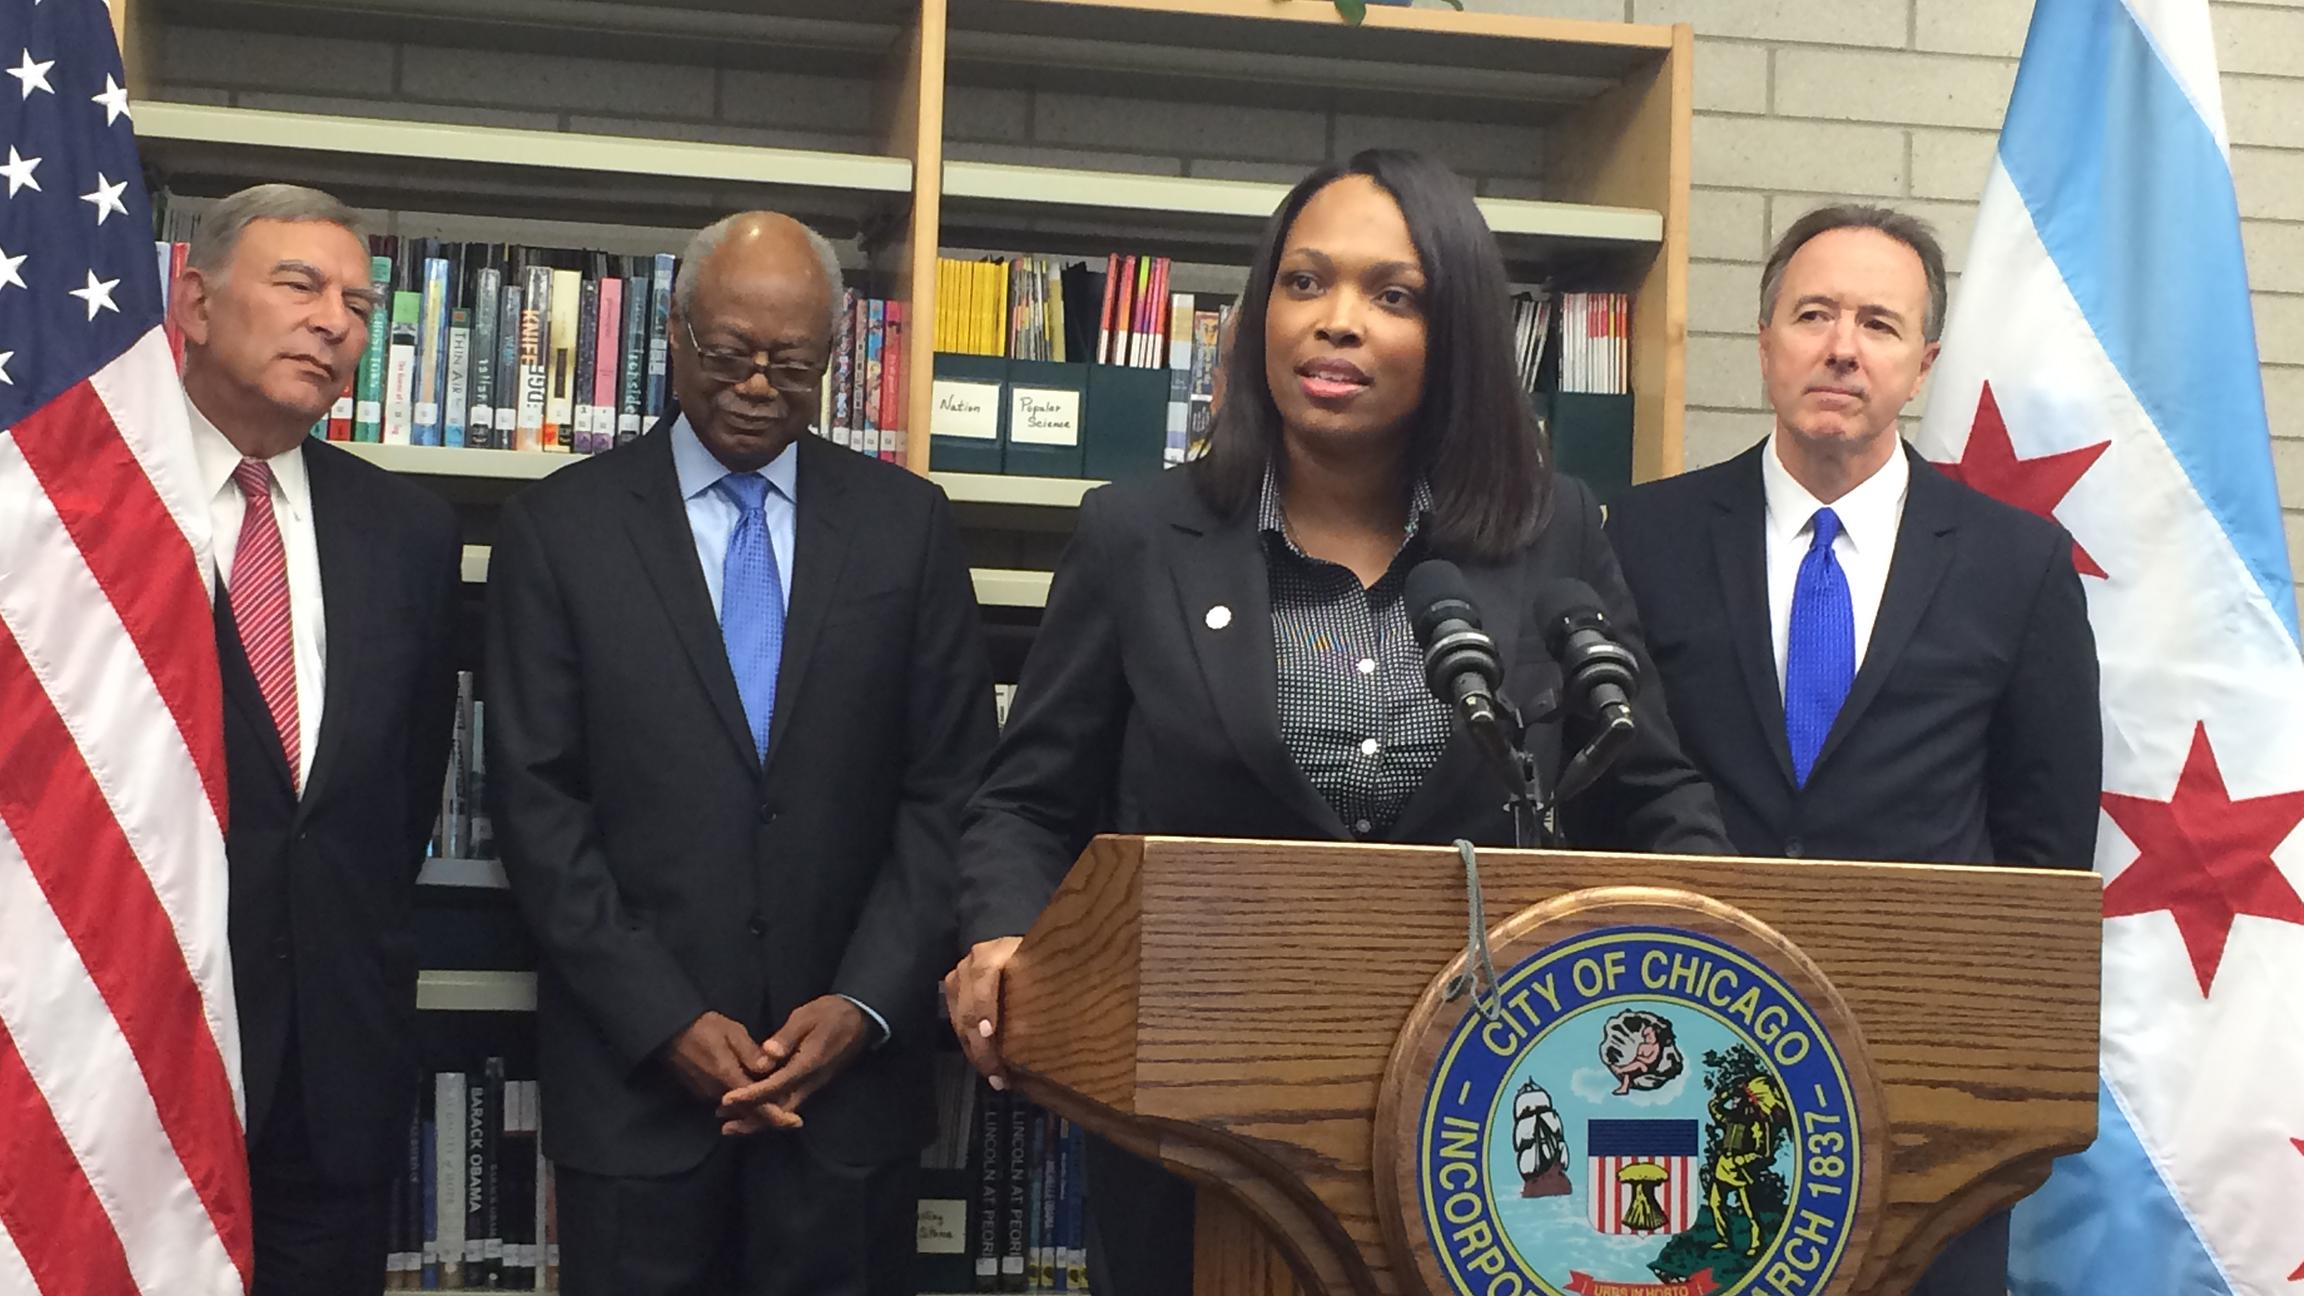 Janice Jackson speaks on July 16, 2015 after being named new chief education officer for Chicago Public Schools. On Dec. 8, she became the district's fourth interim or full-time CEO since 2015.